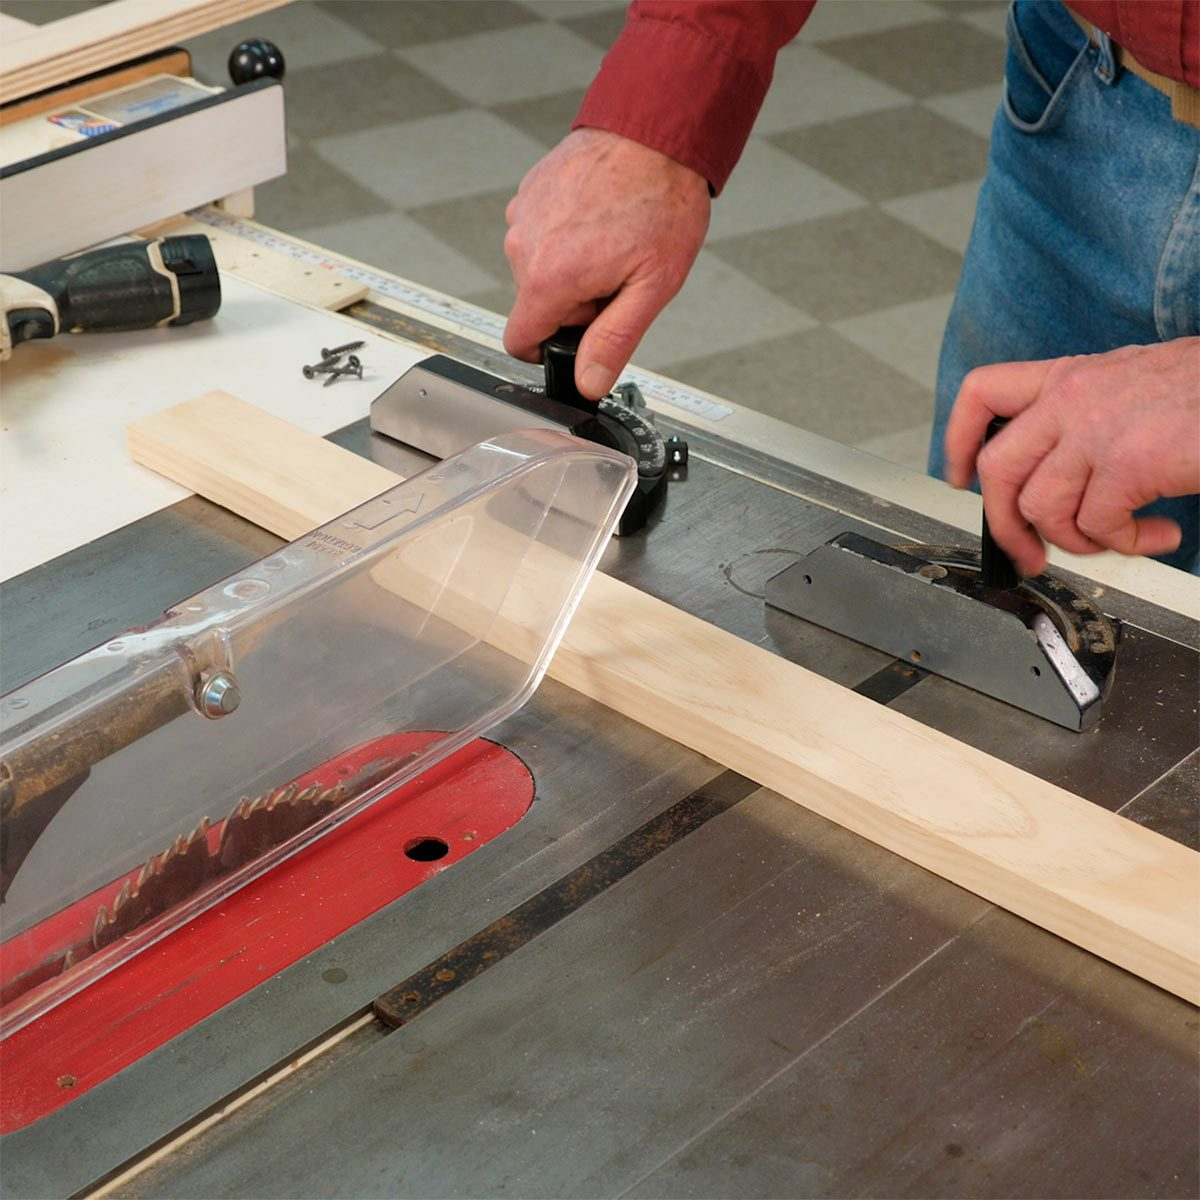 How to use a table saw ripping boards safely family handyman how to cut panels on a table saw keyboard keysfo Images